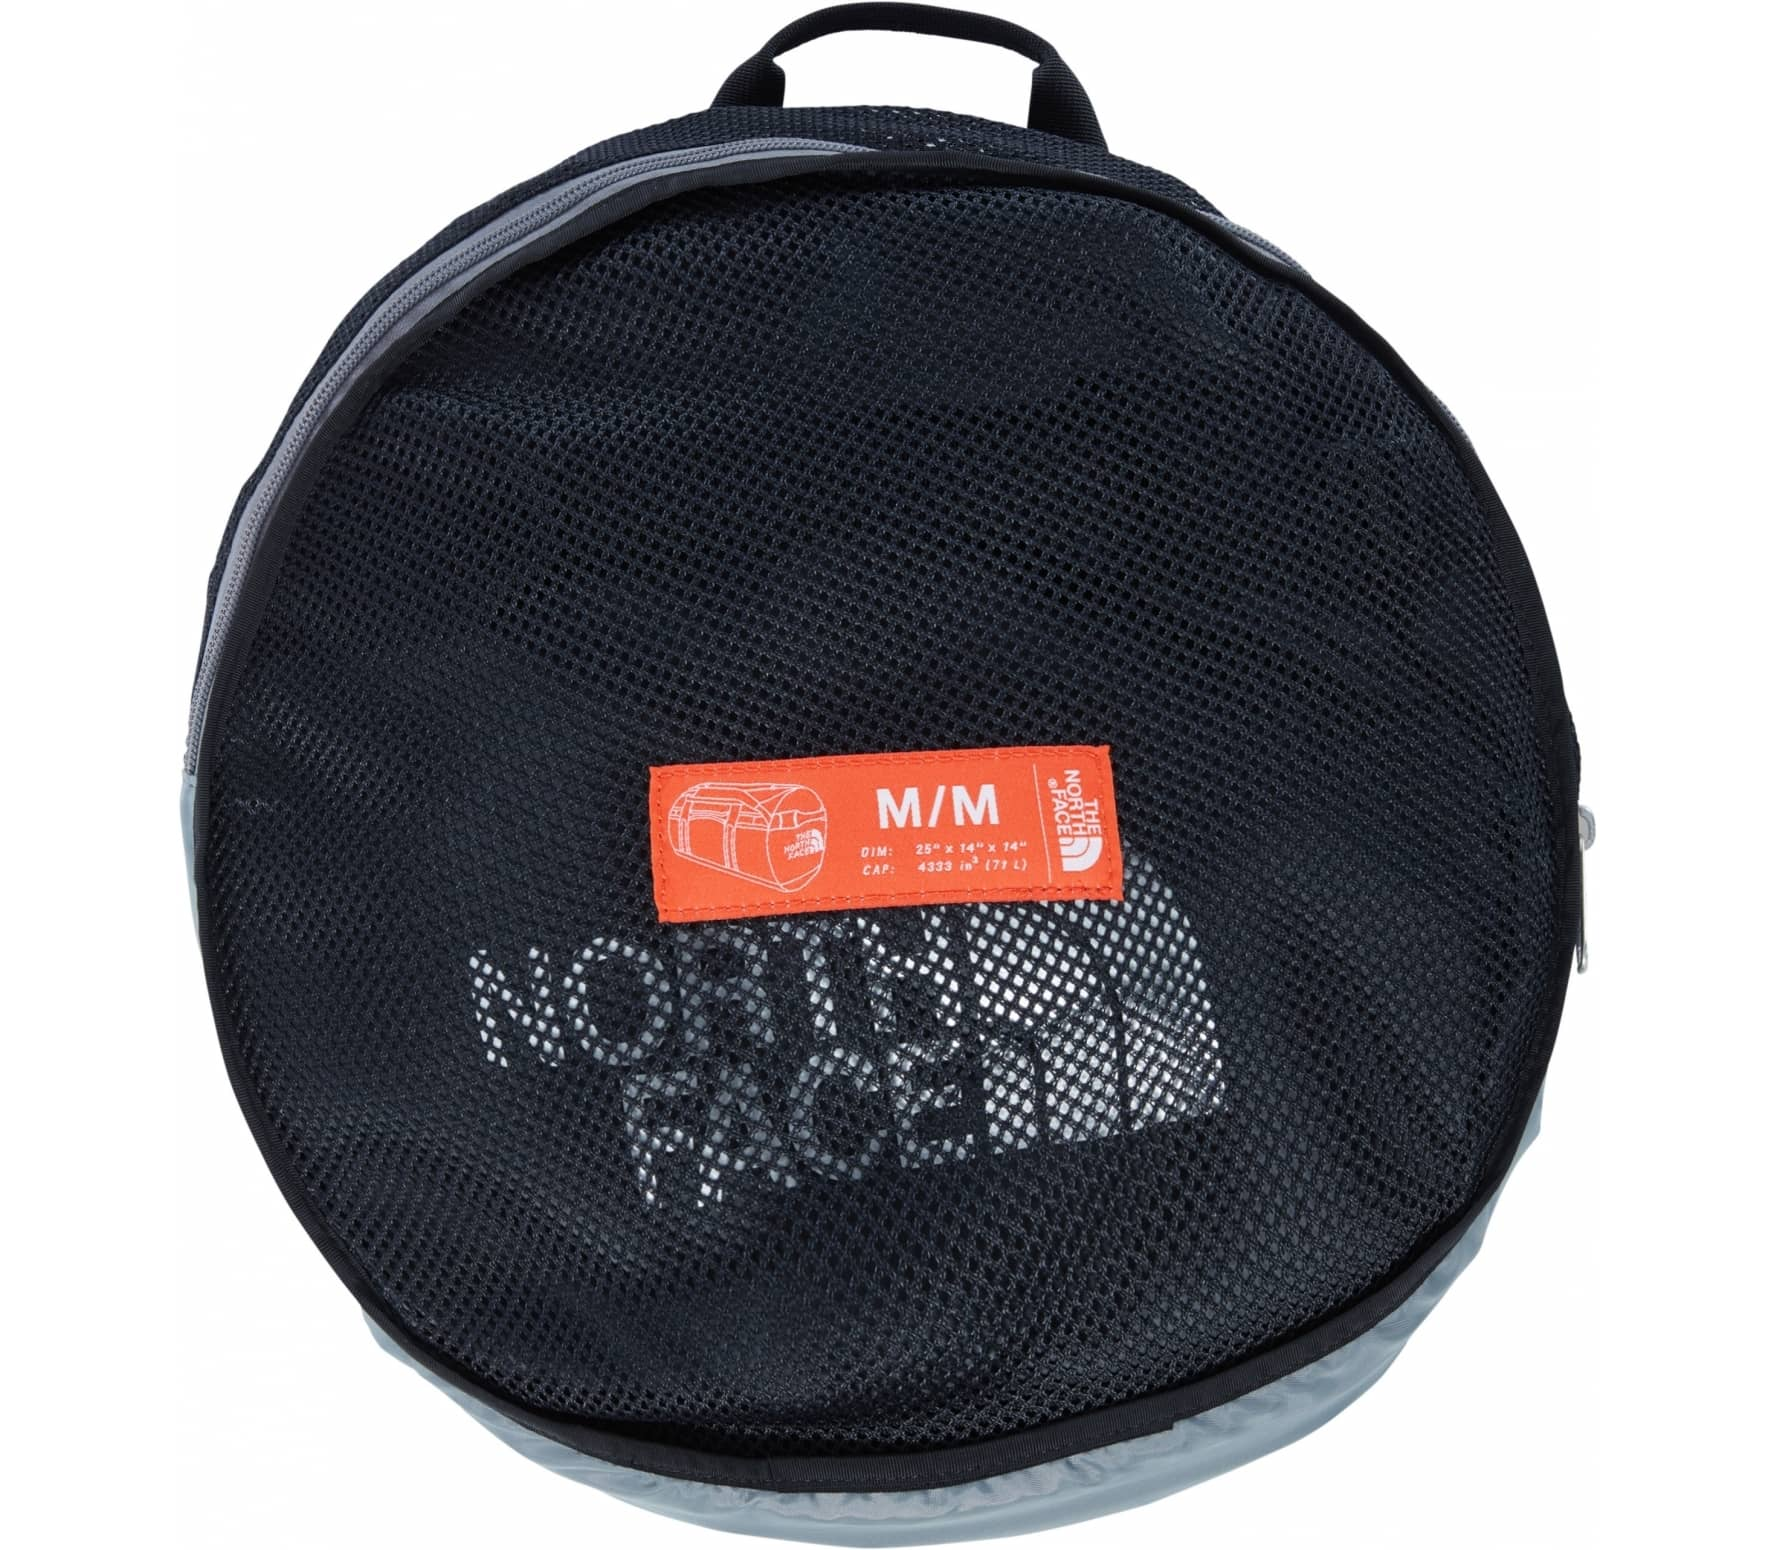 The North Face - Base Camp M - Update Duffel (schwarz)